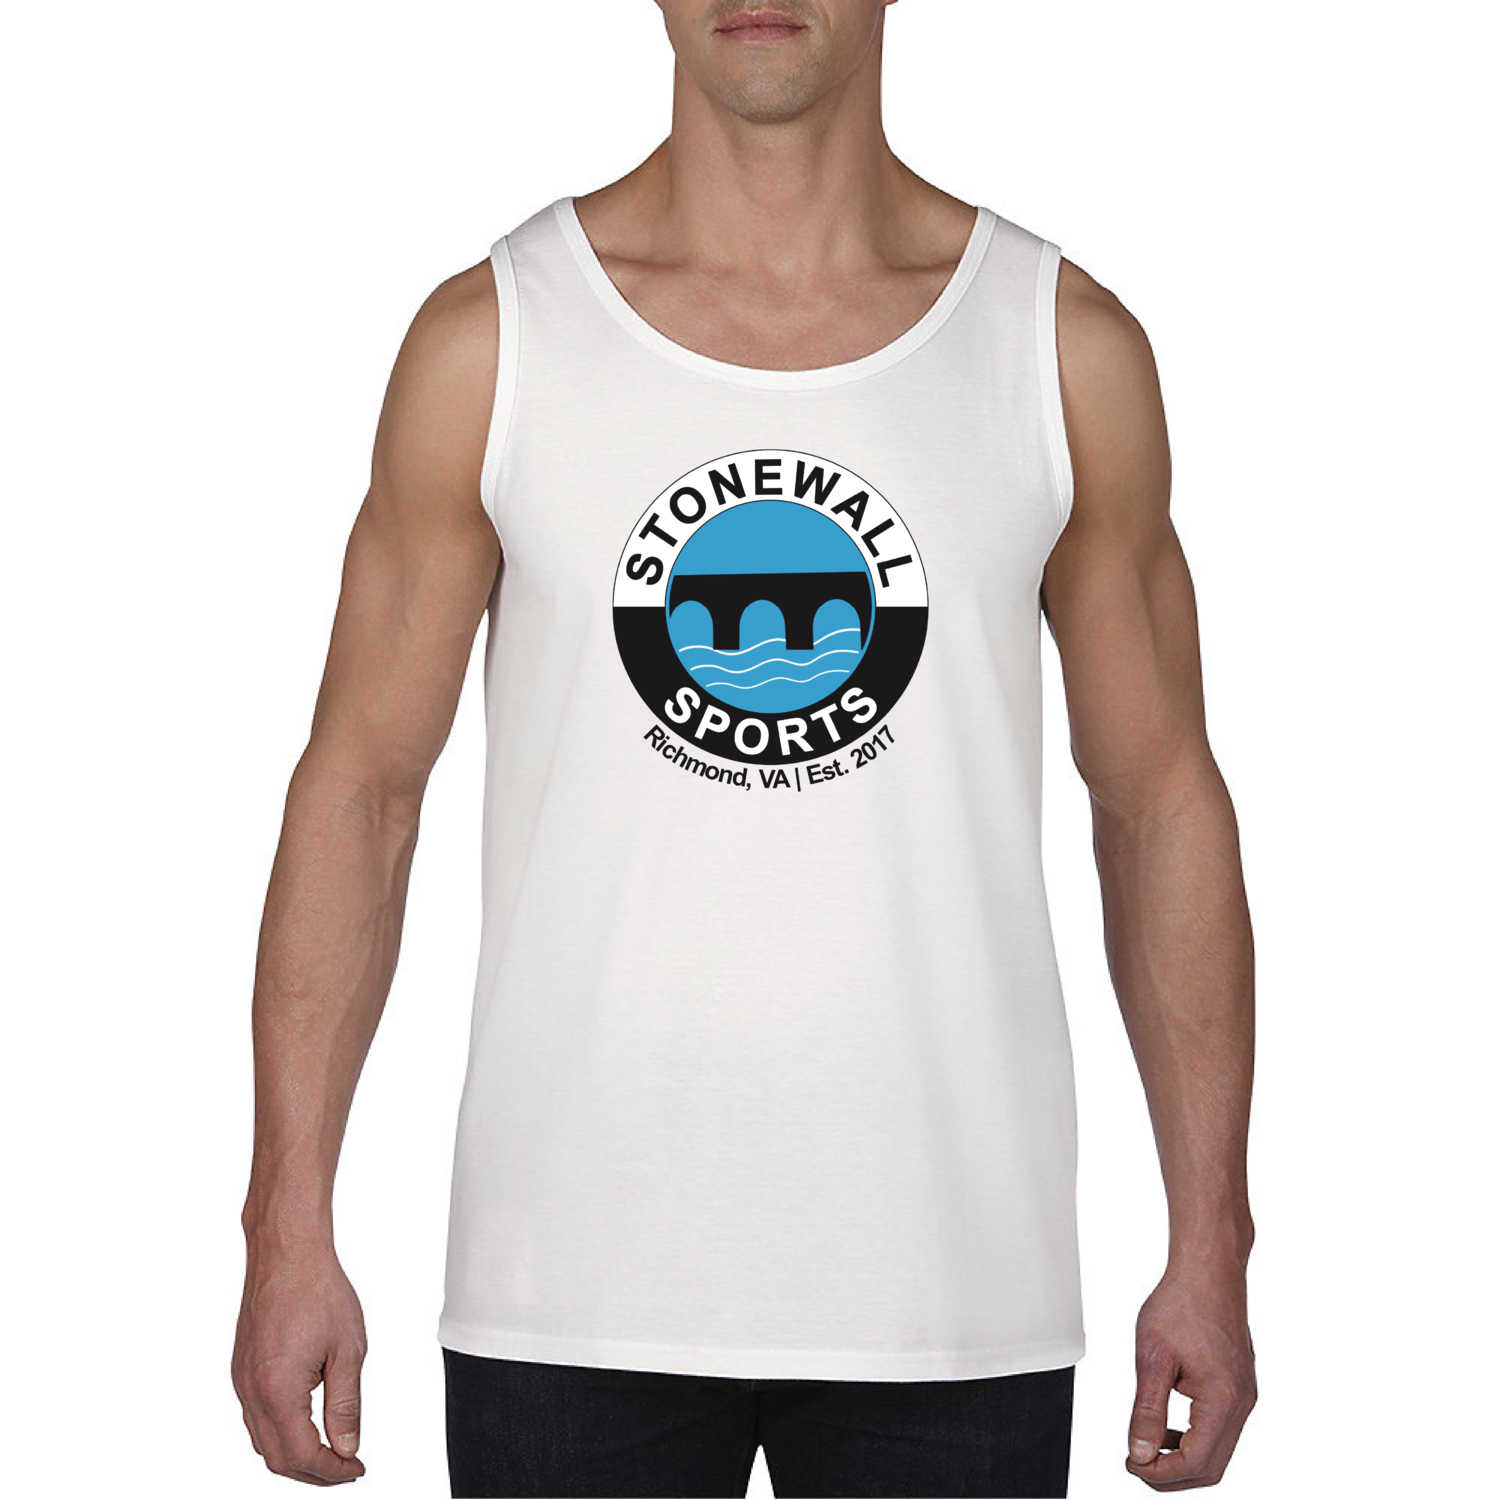 Stonewall Sports Unisex Tank Top - More Colors Available!